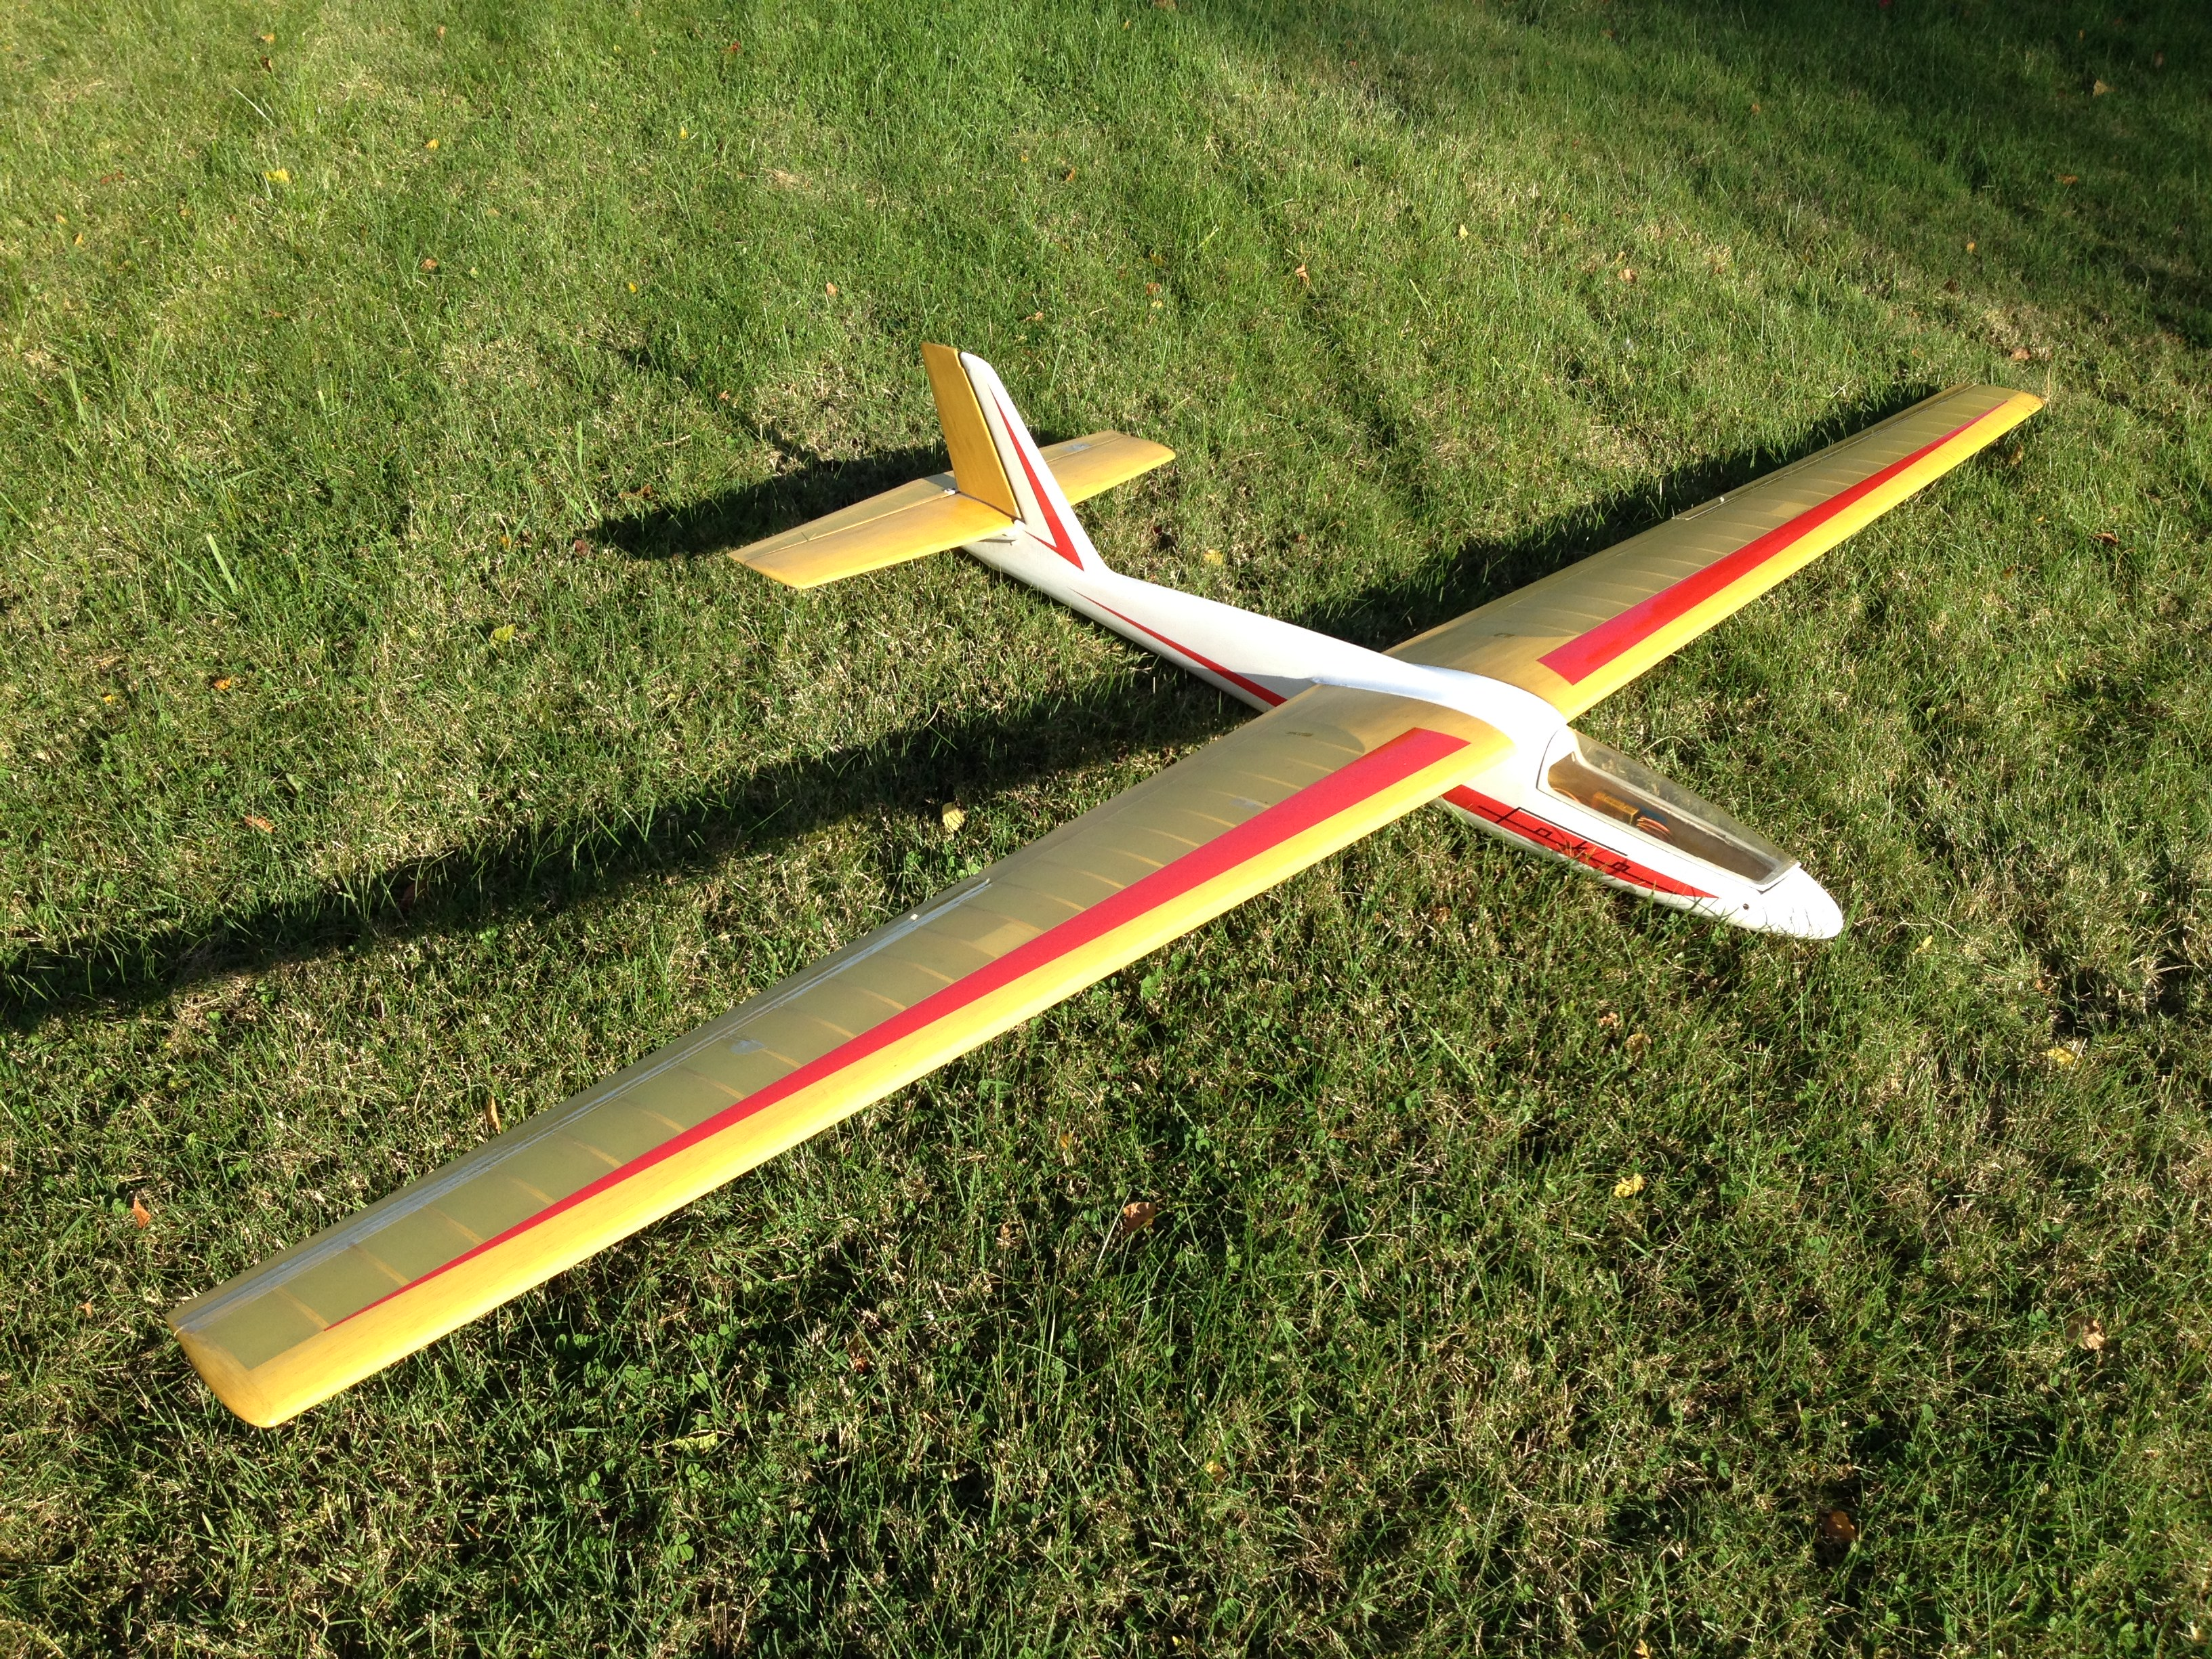 Starting with my collection of old Graupner gliders